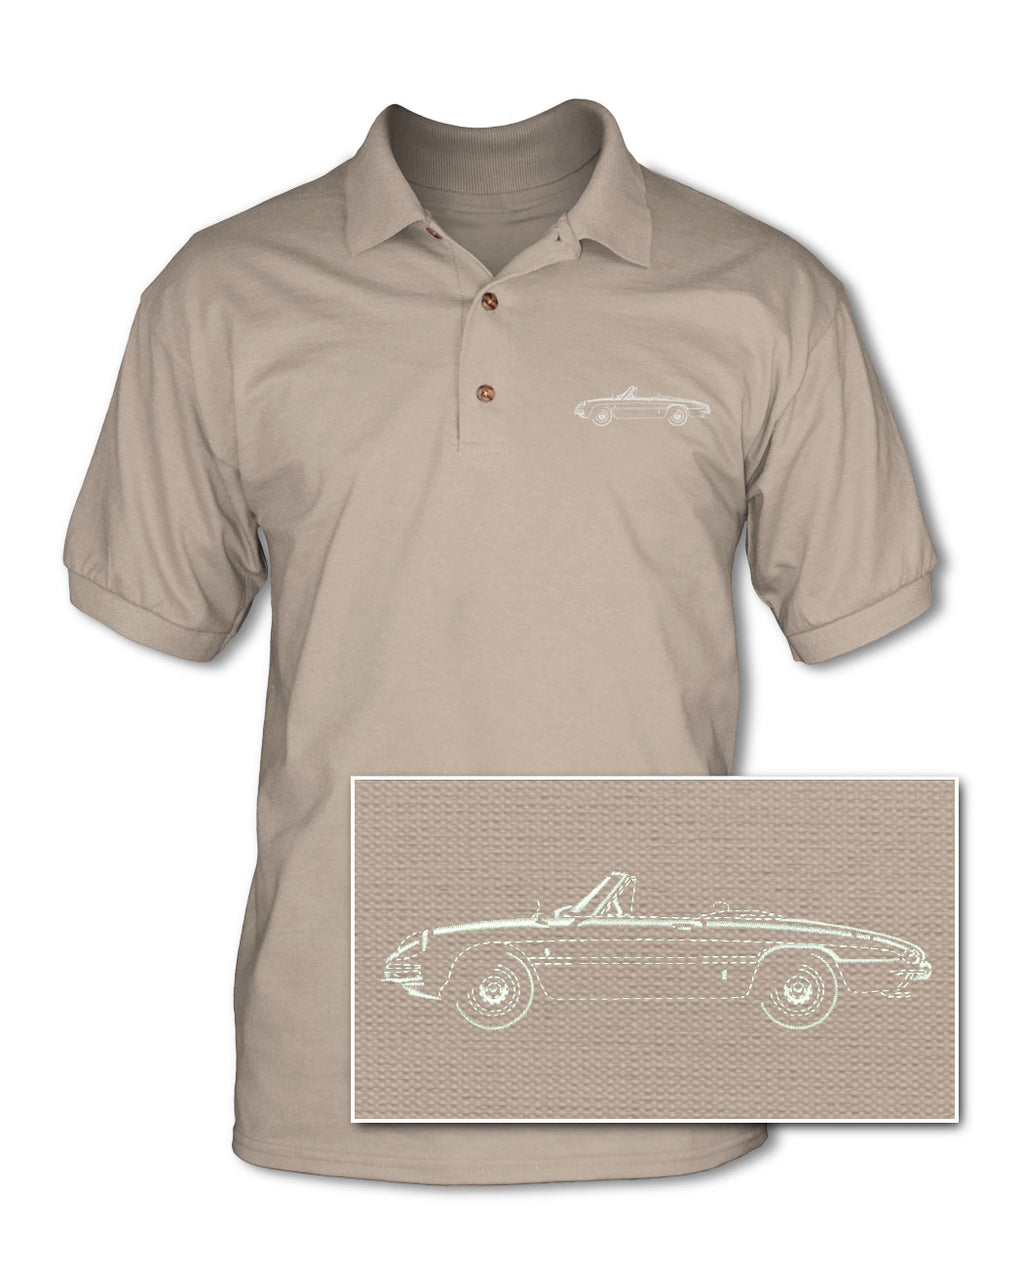 Alfa Romeo Spider Veloce Convertible Duetto 1966 - 1969 Adult Pique Polo Shirt - Side View